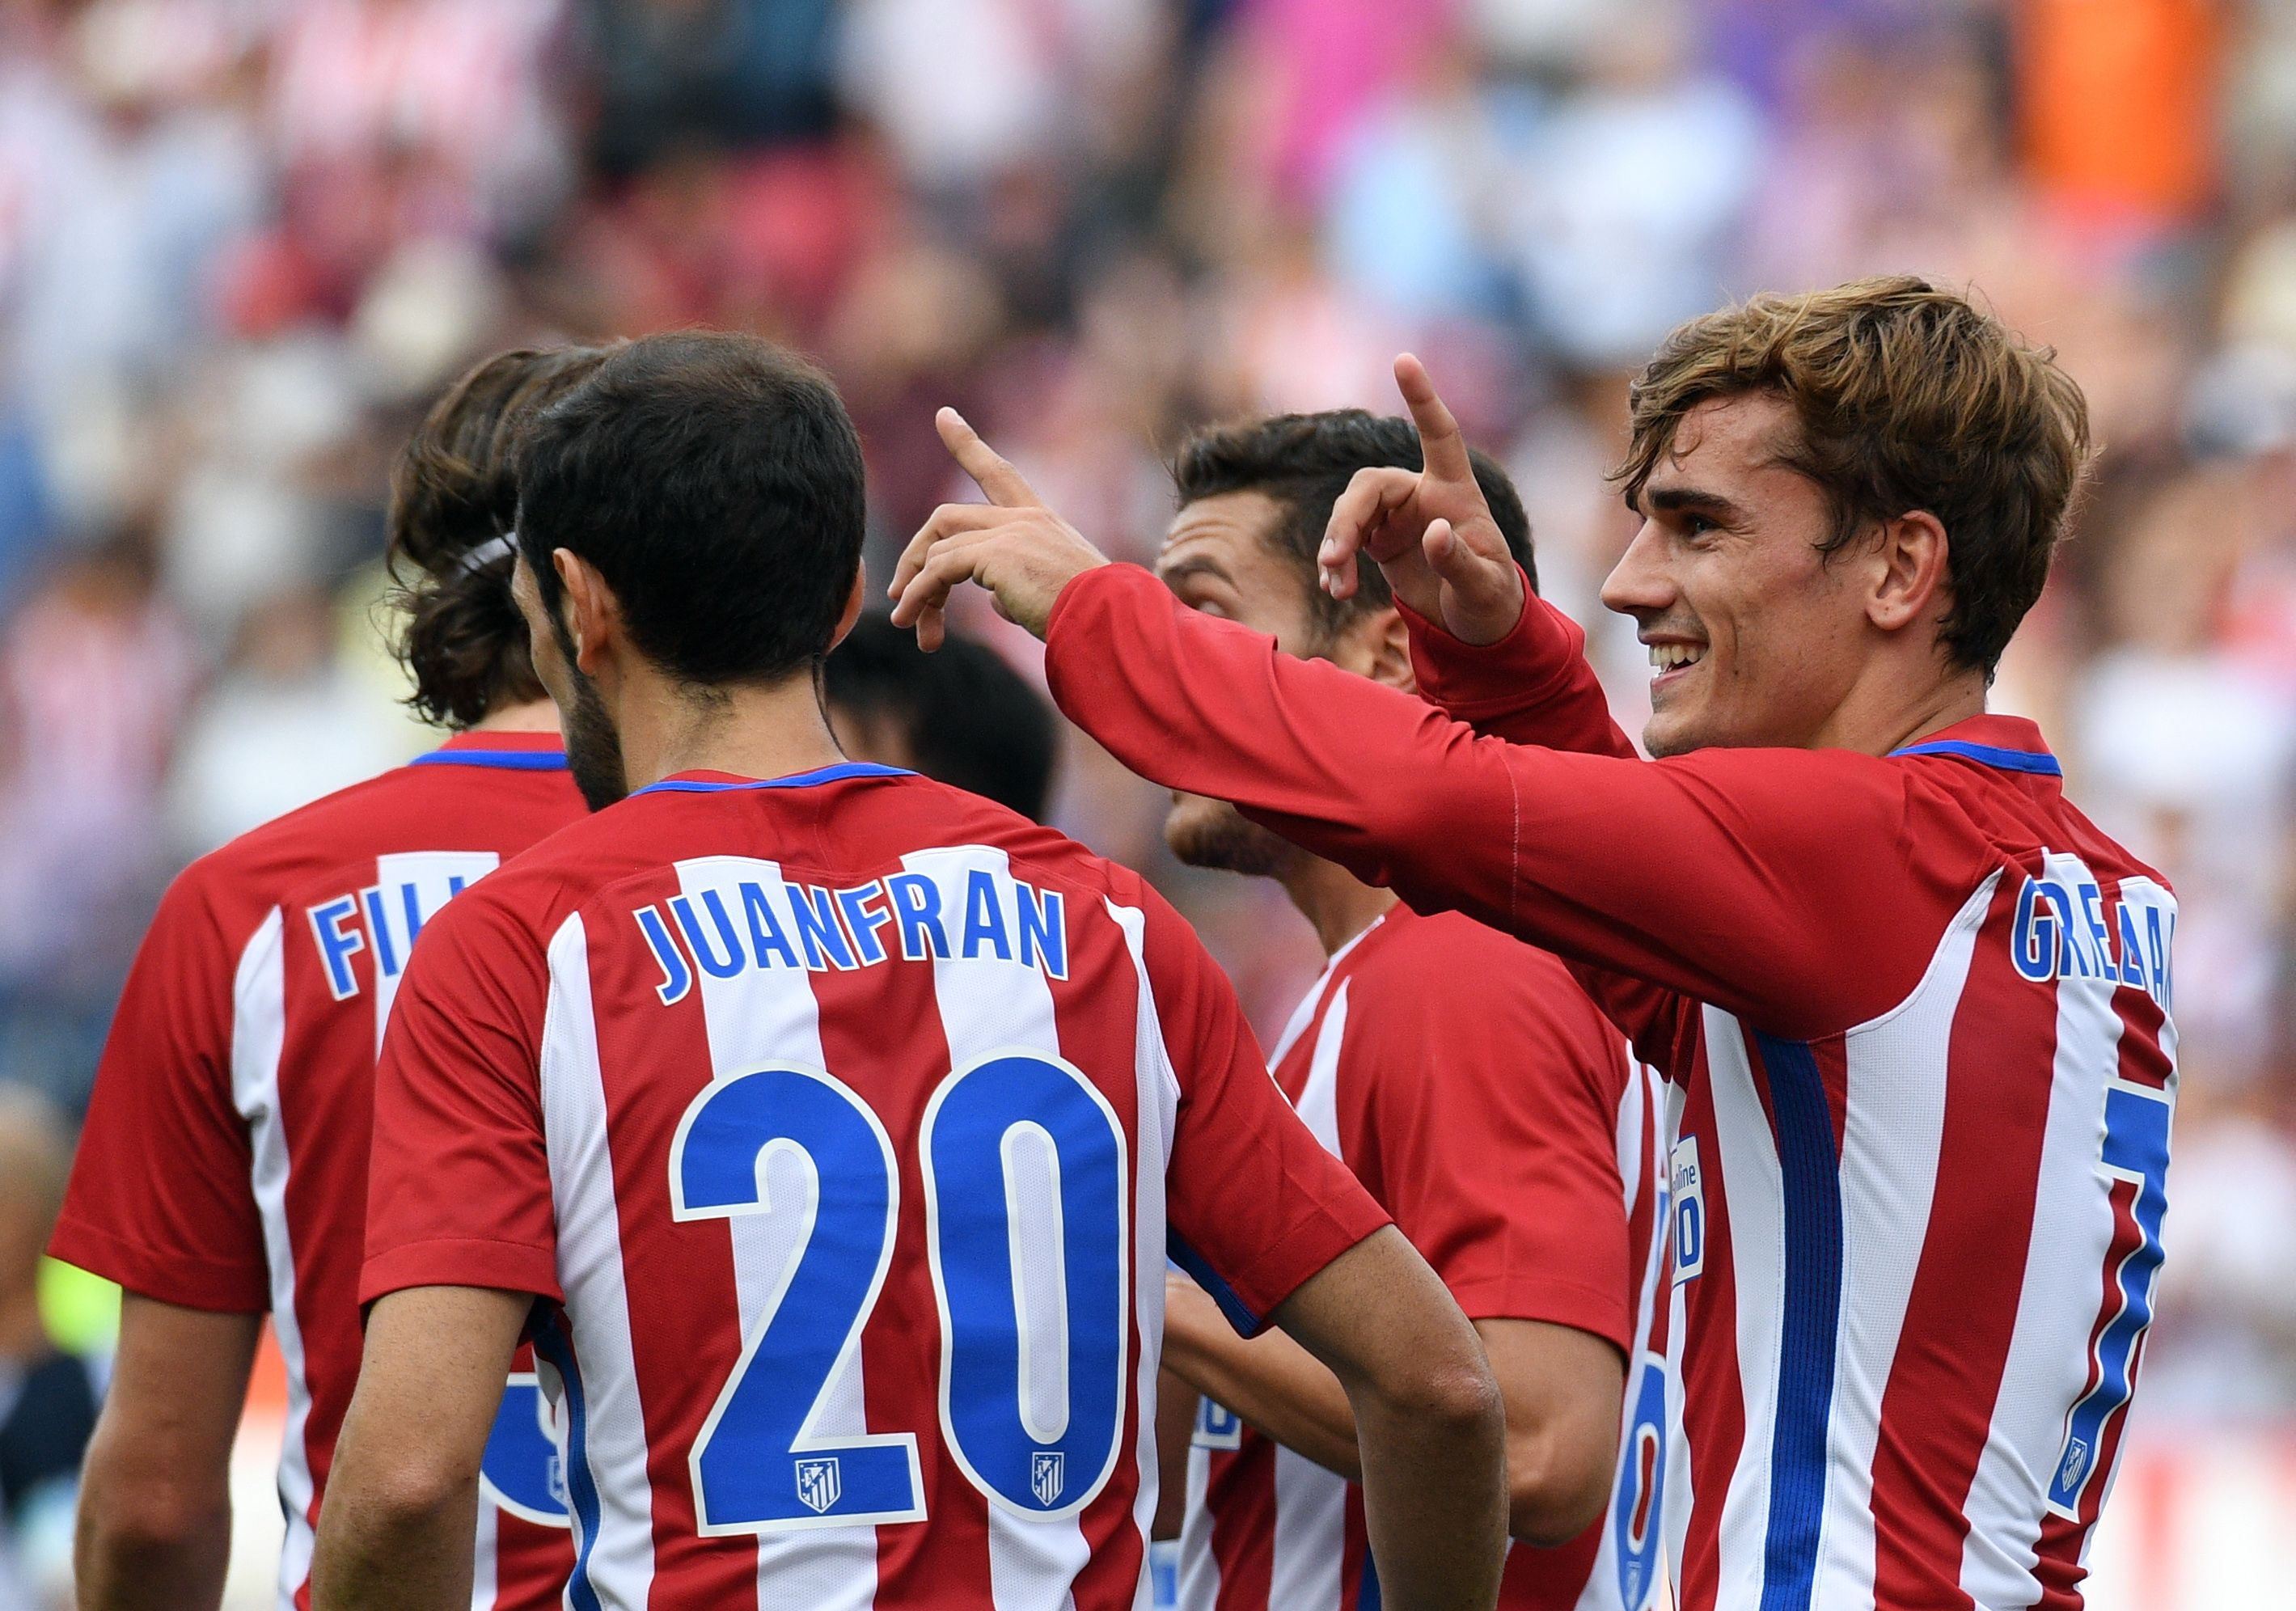 Antoine Griezmann, right, celebrates during the La Liga match between Atletico Madrid and Deportivo La Coruna at the Vicente Calderon on September 25, 2016 in Madrid, Spain. (GERARD JULIEN/AFP/Getty Images)